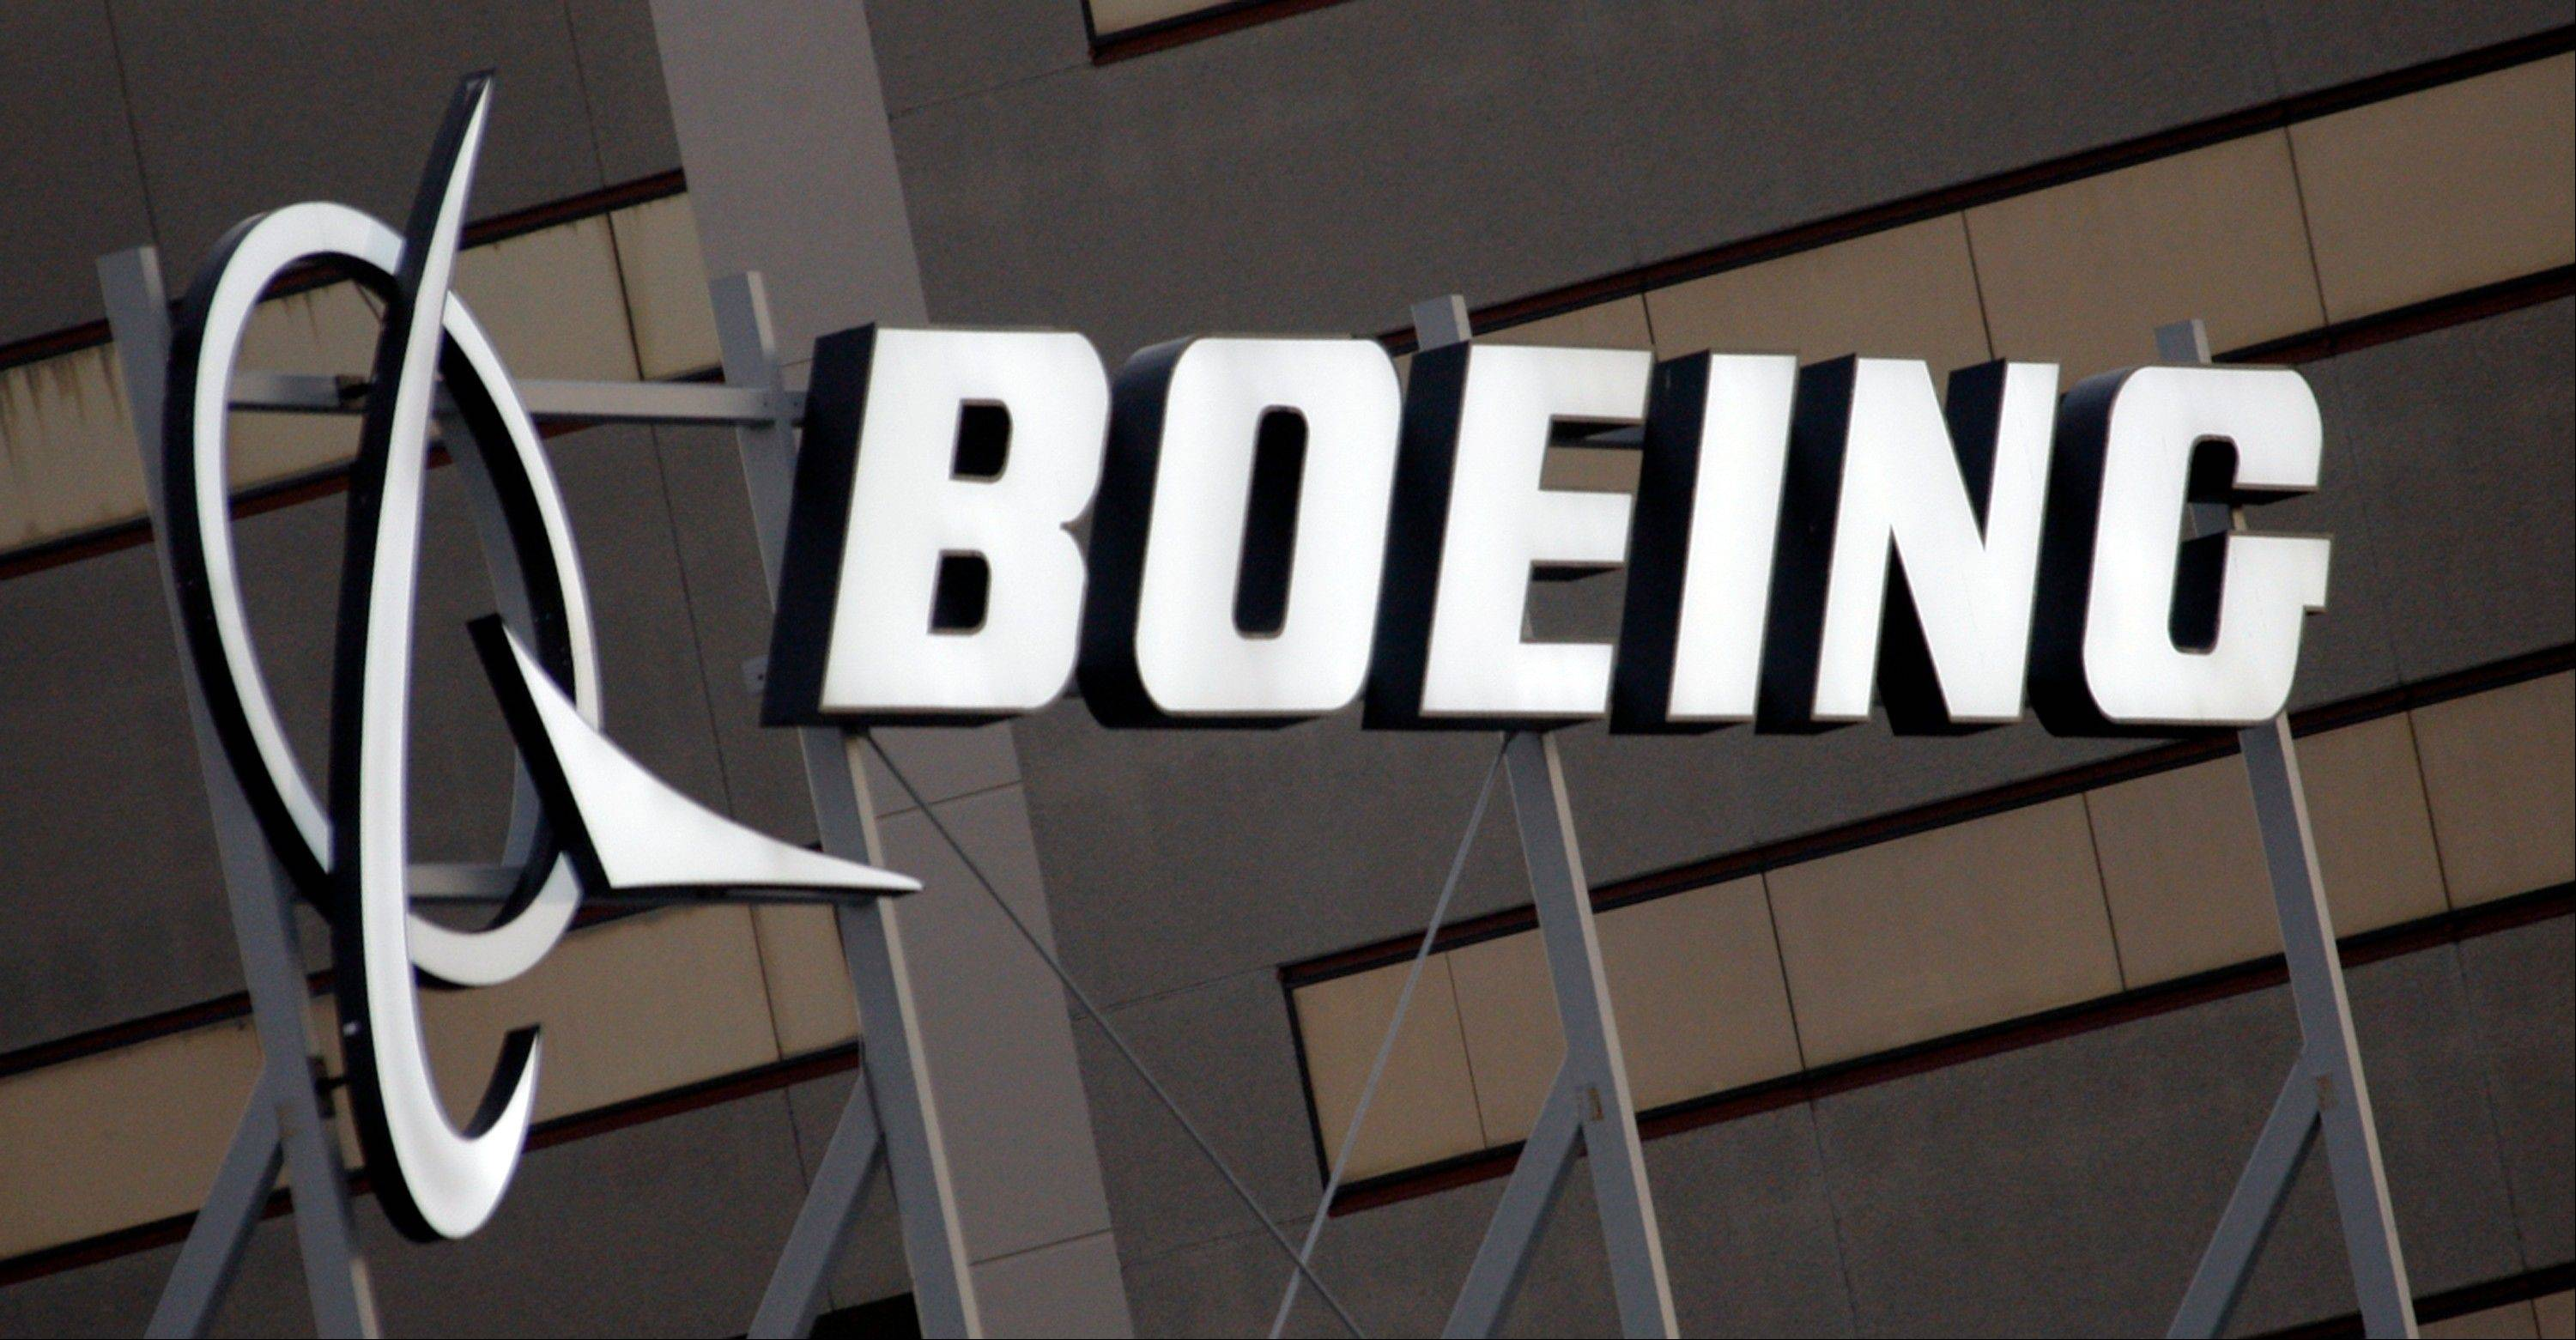 Alabama looking to attract Boeing assembly plant